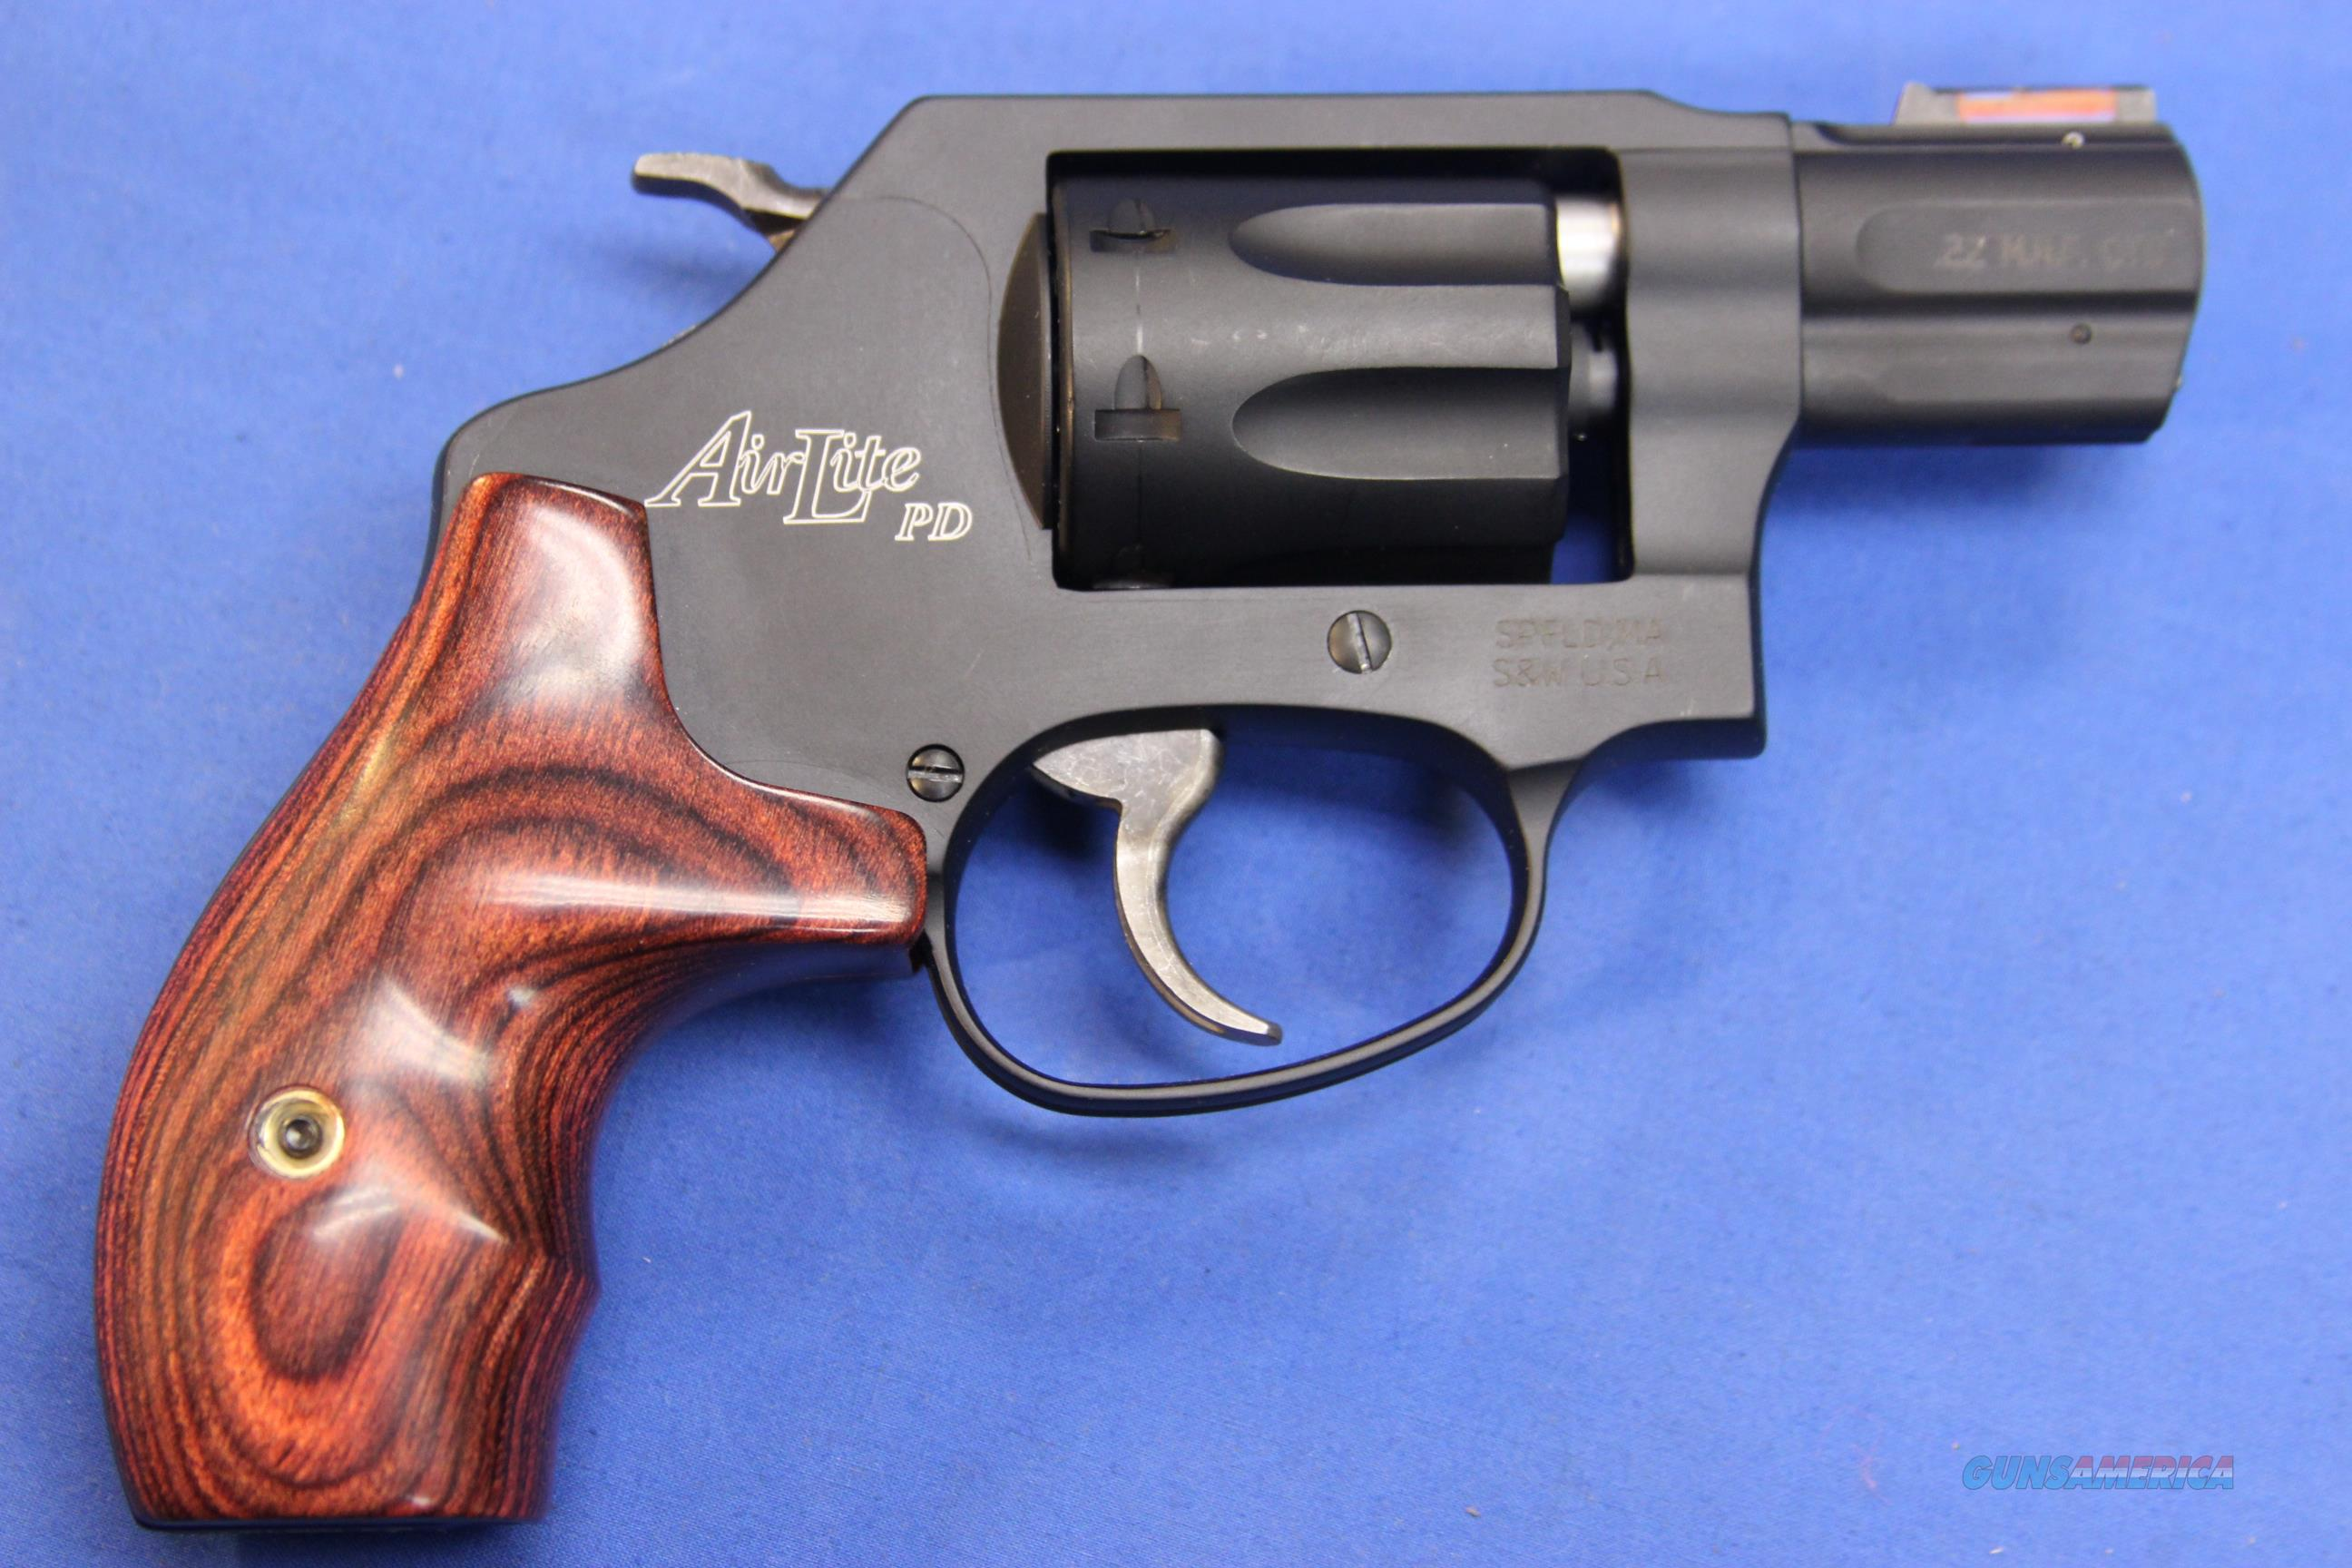 SMITH & WESSON 351PD .22 MAG. - NEW!  Guns > Pistols > Smith & Wesson Revolvers > Pocket Pistols